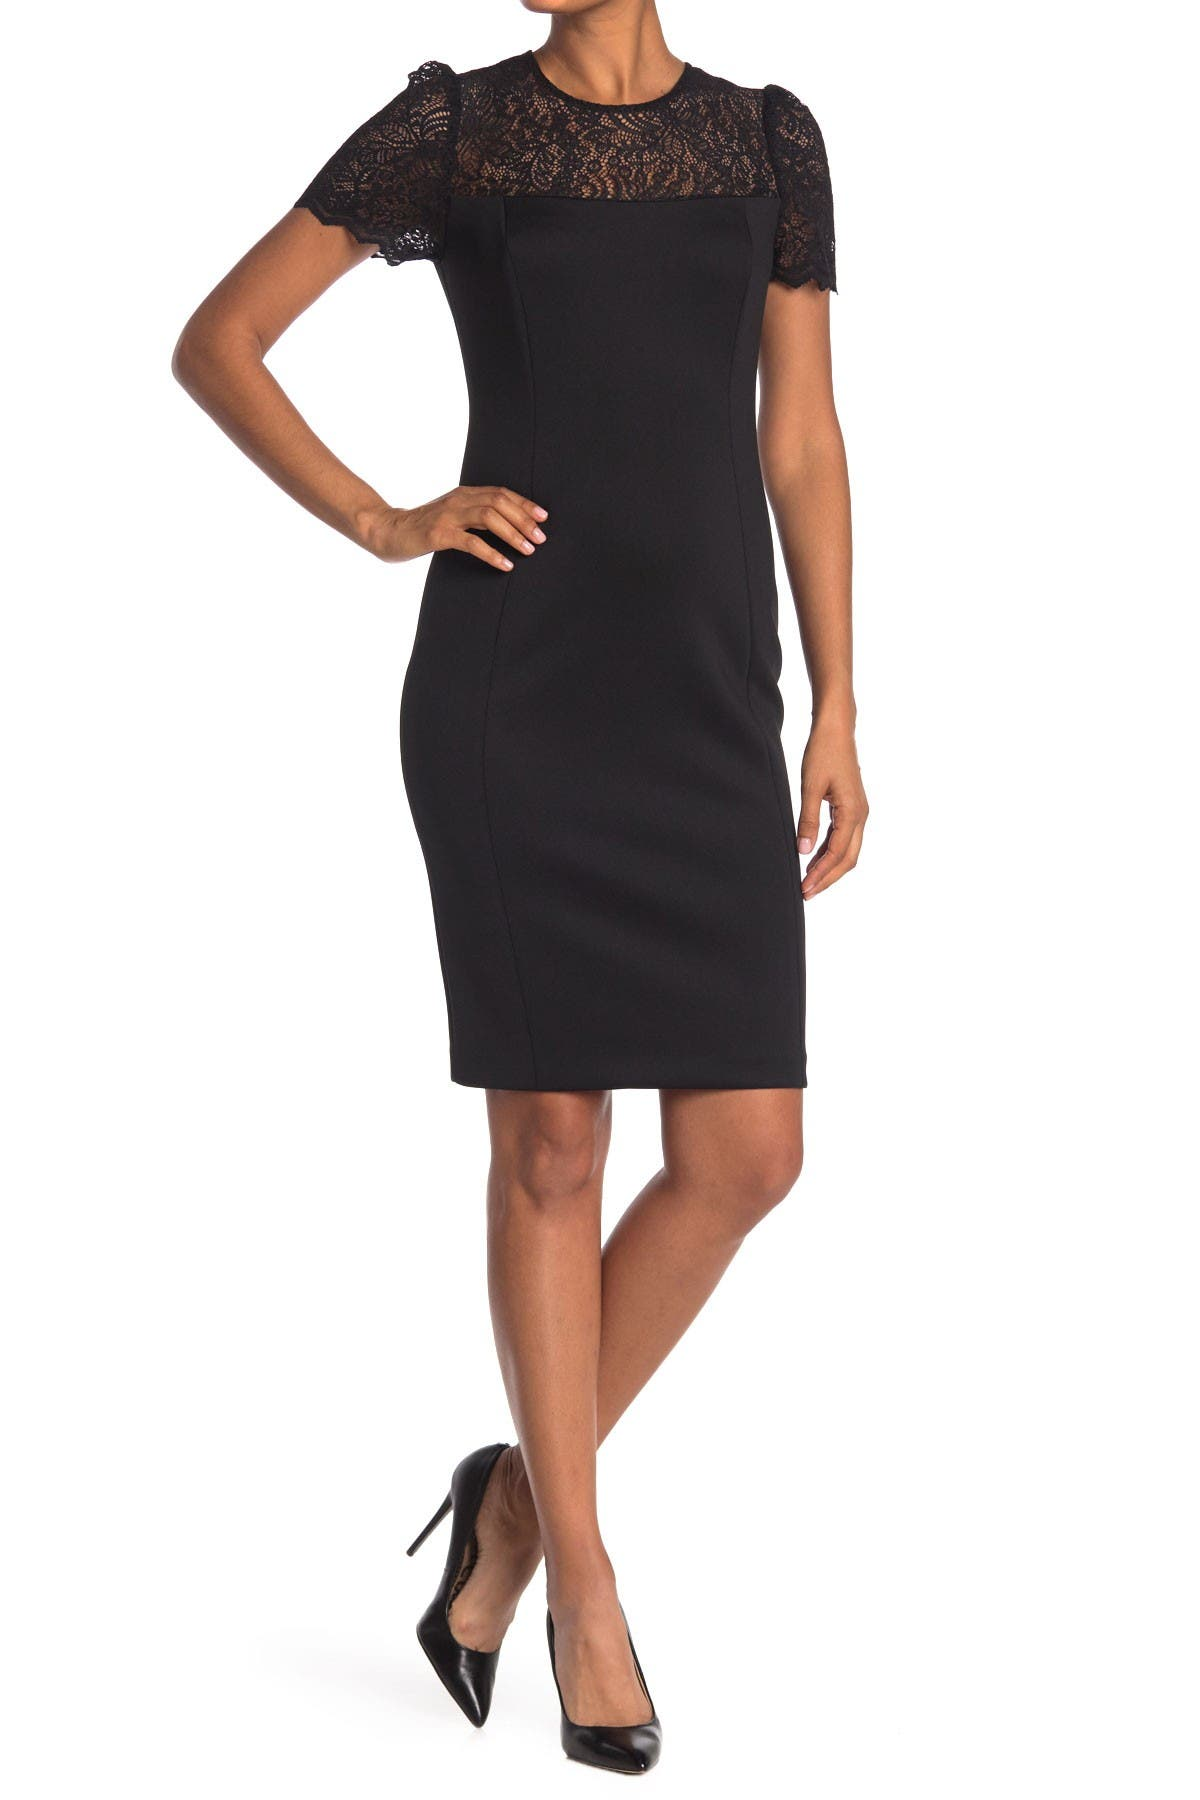 Image of Calvin Klein Lace Yoke Sheath Dress